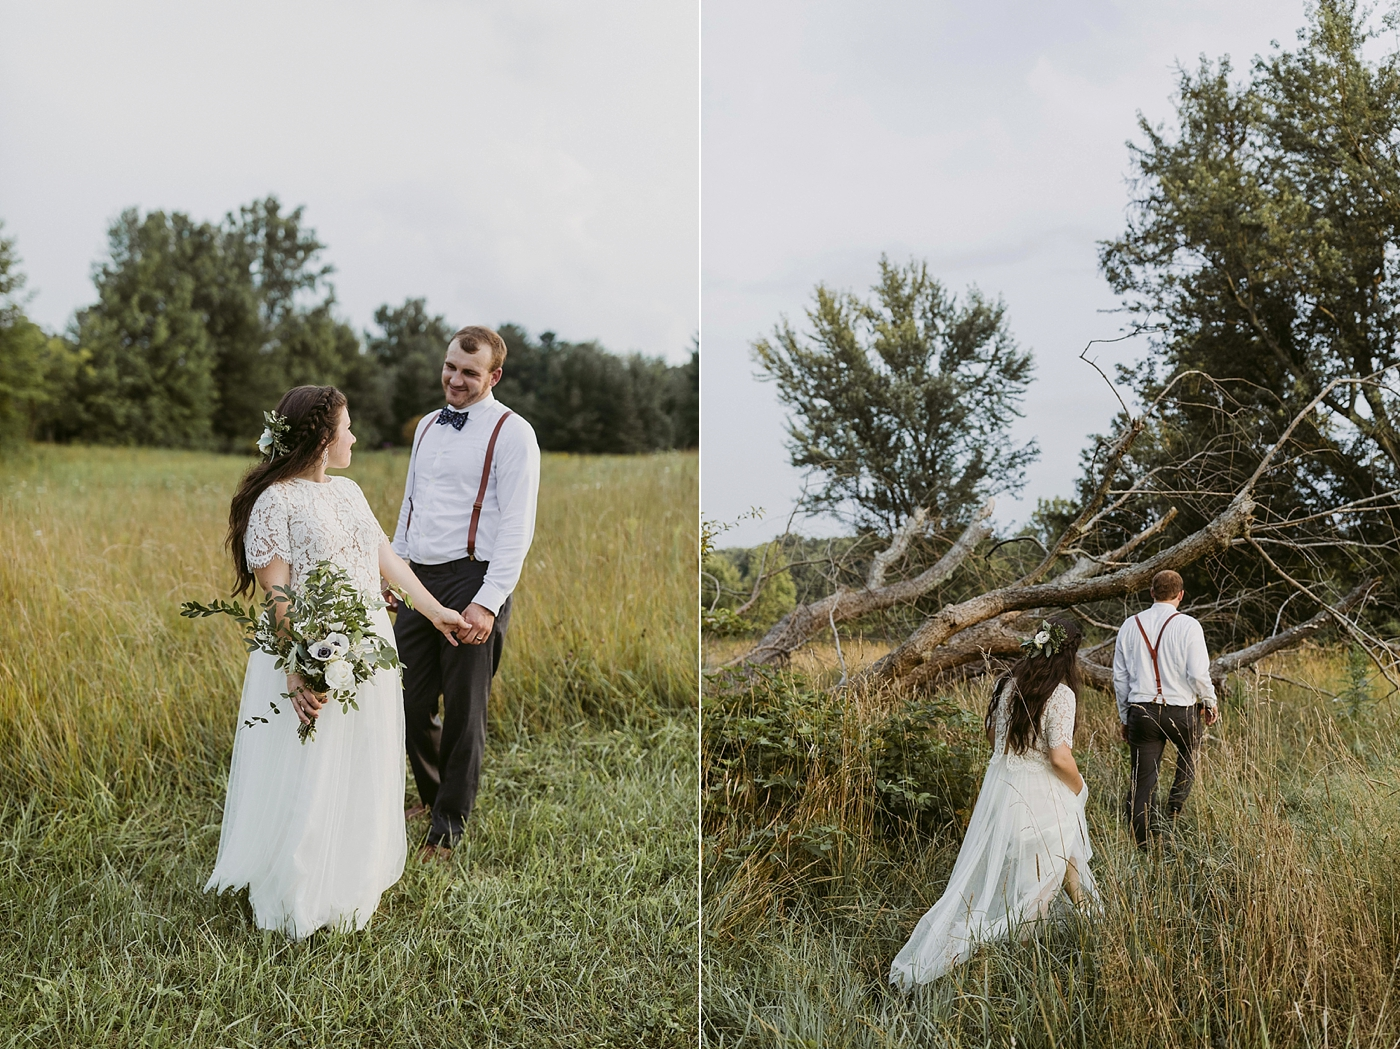 Meadow-Elopement-Ashley+Ben_MJPHOTO2018-274.jpg